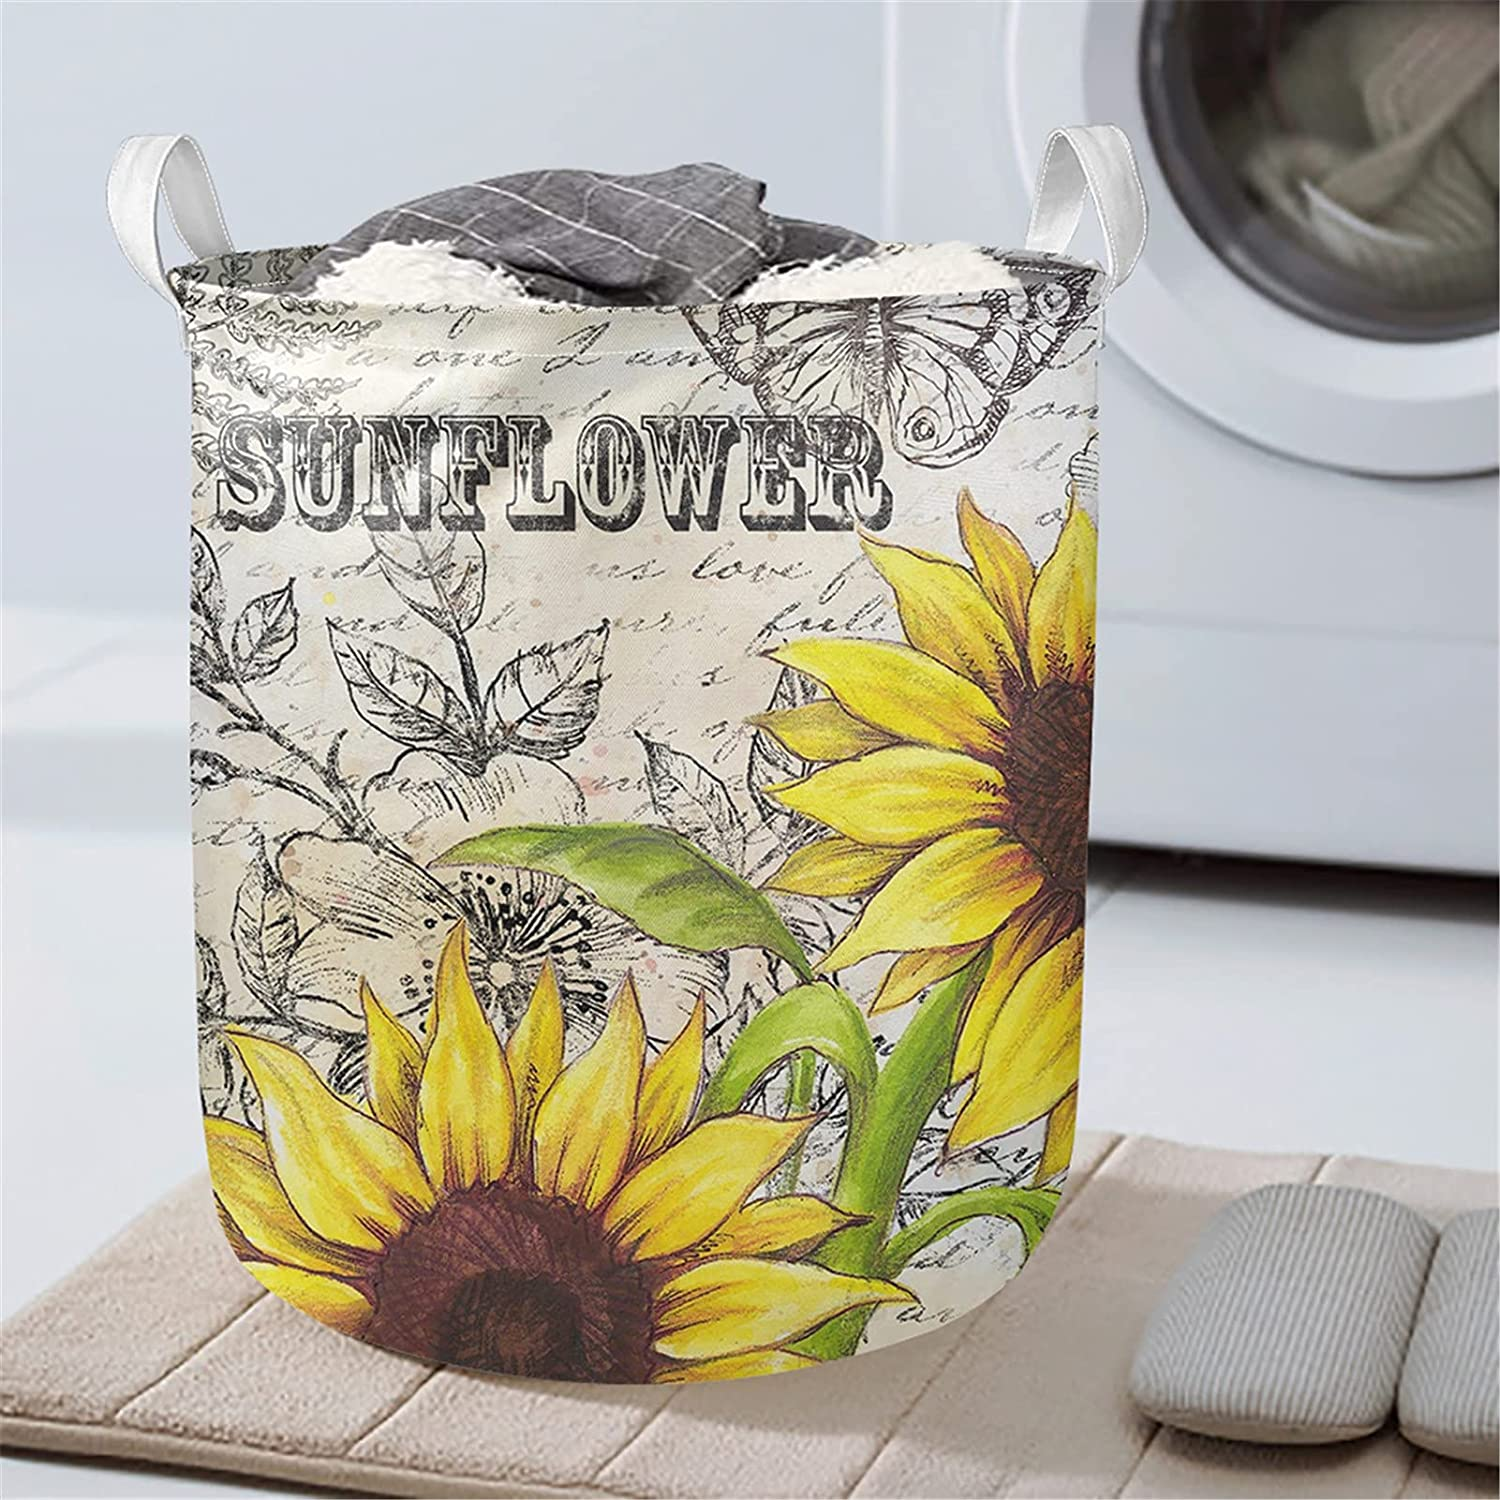 Poceacles Sunflower Butterfly Print Waterproof Storage Basket, Collapsible Round Standable Bin, Laundry Hamper for Bathroom/Home Decor/Baby Hamper